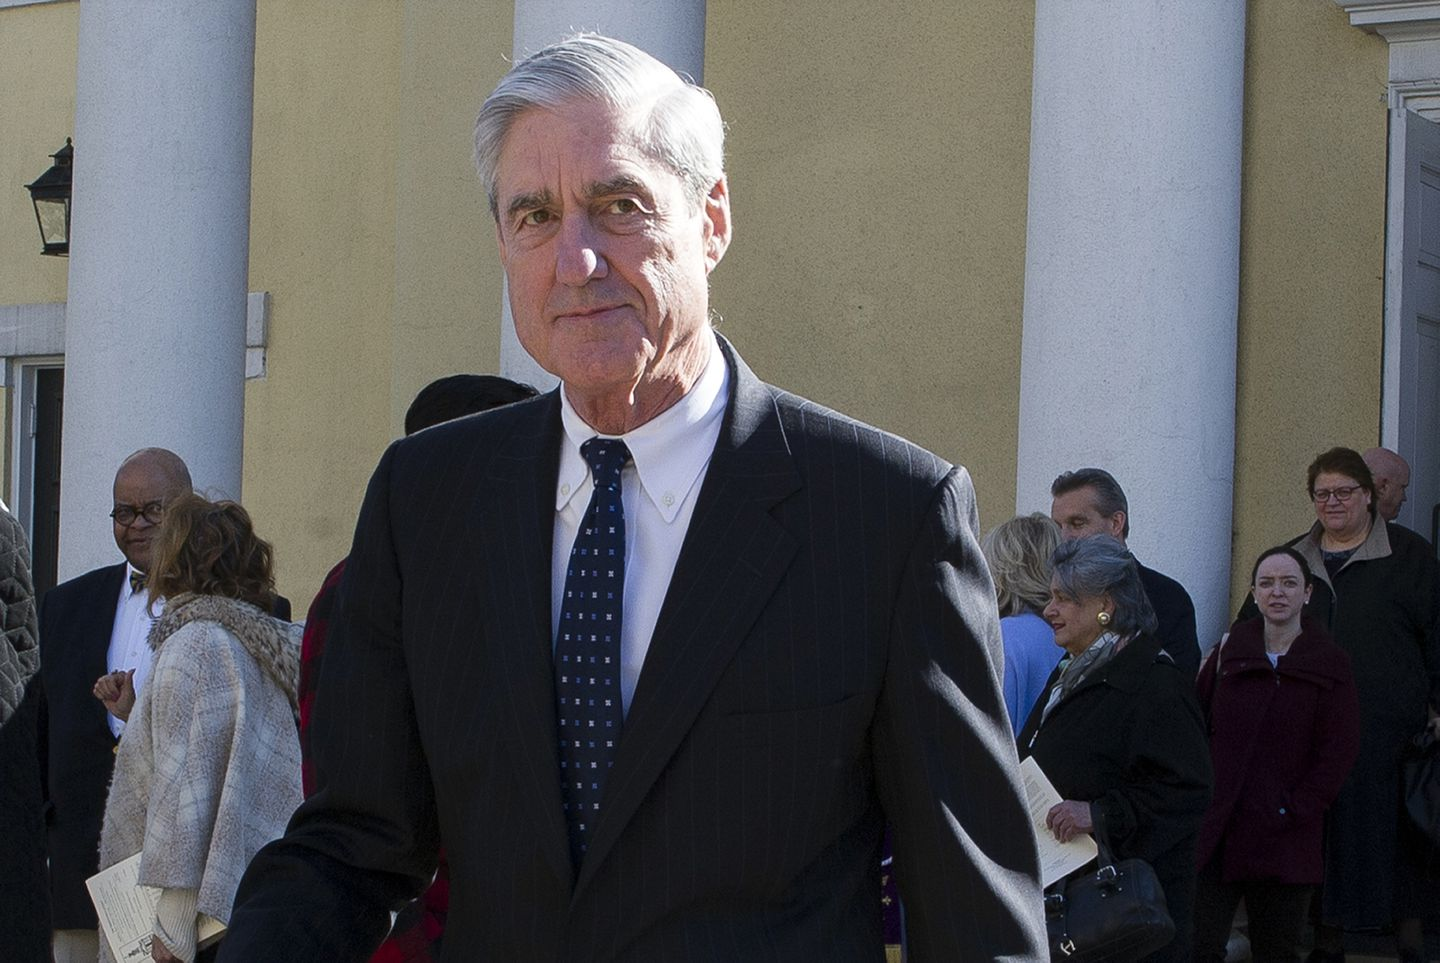 Democrat hoping for agreement on Mueller's House testimony